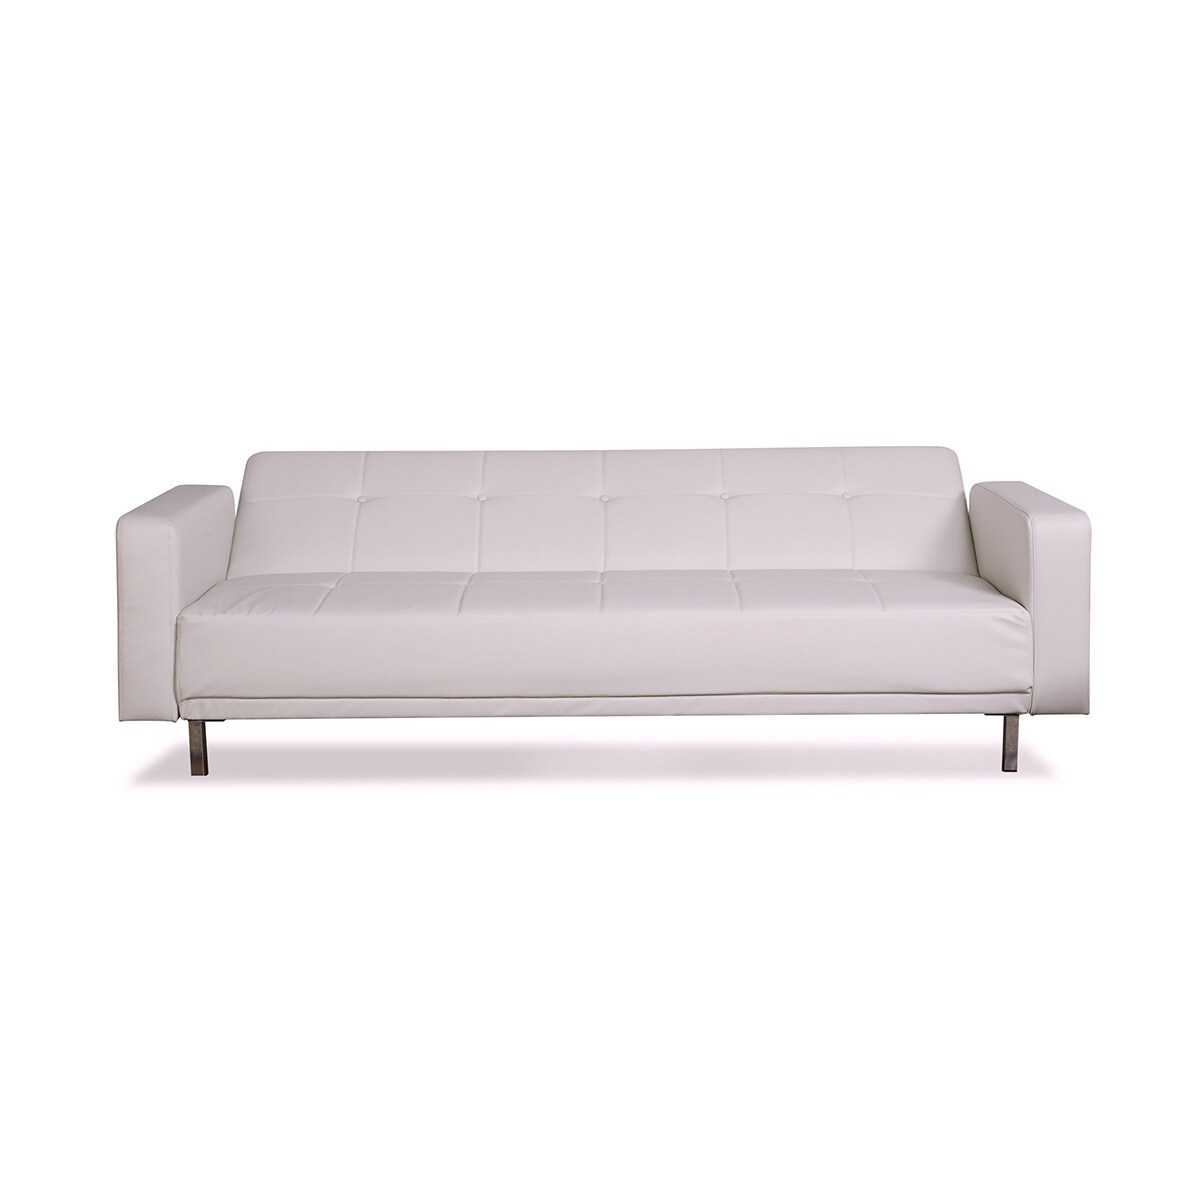 Shop Cleveland White Convertible Sofa Bed   Free Shipping Today    Overstock.com   10878853